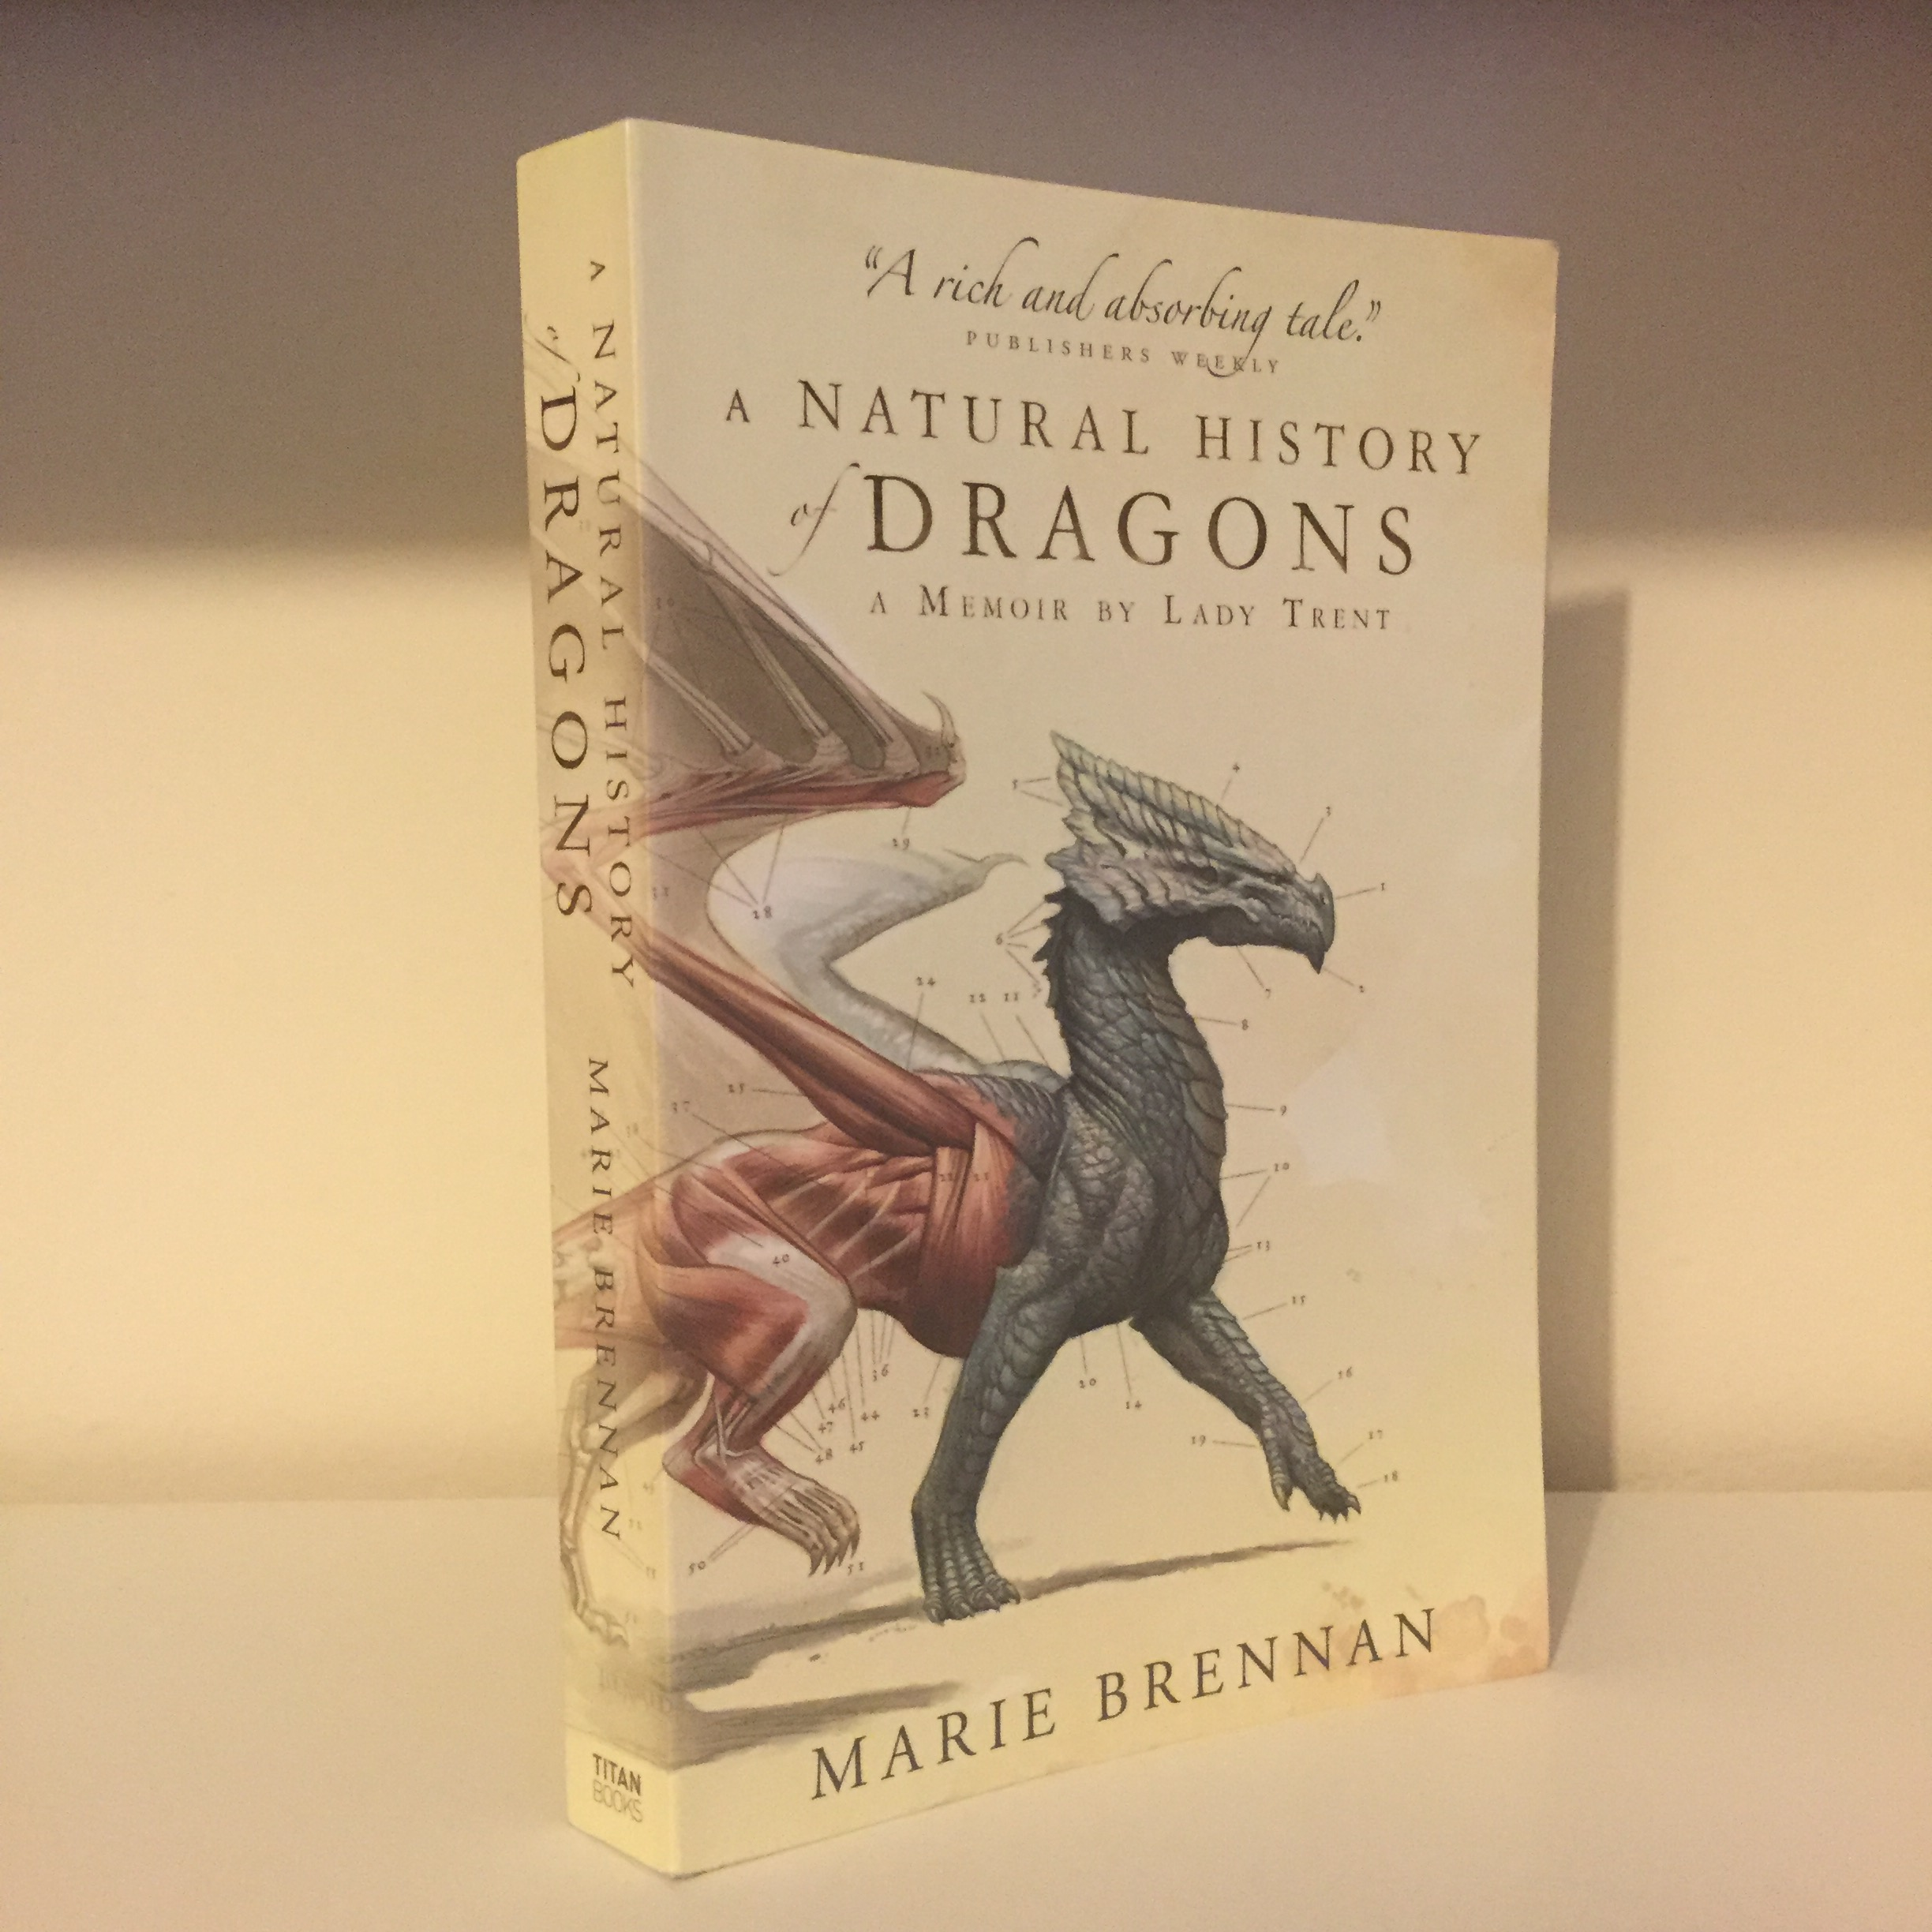 Exploring genres with A Natural History of Dragons by Marie Brennan